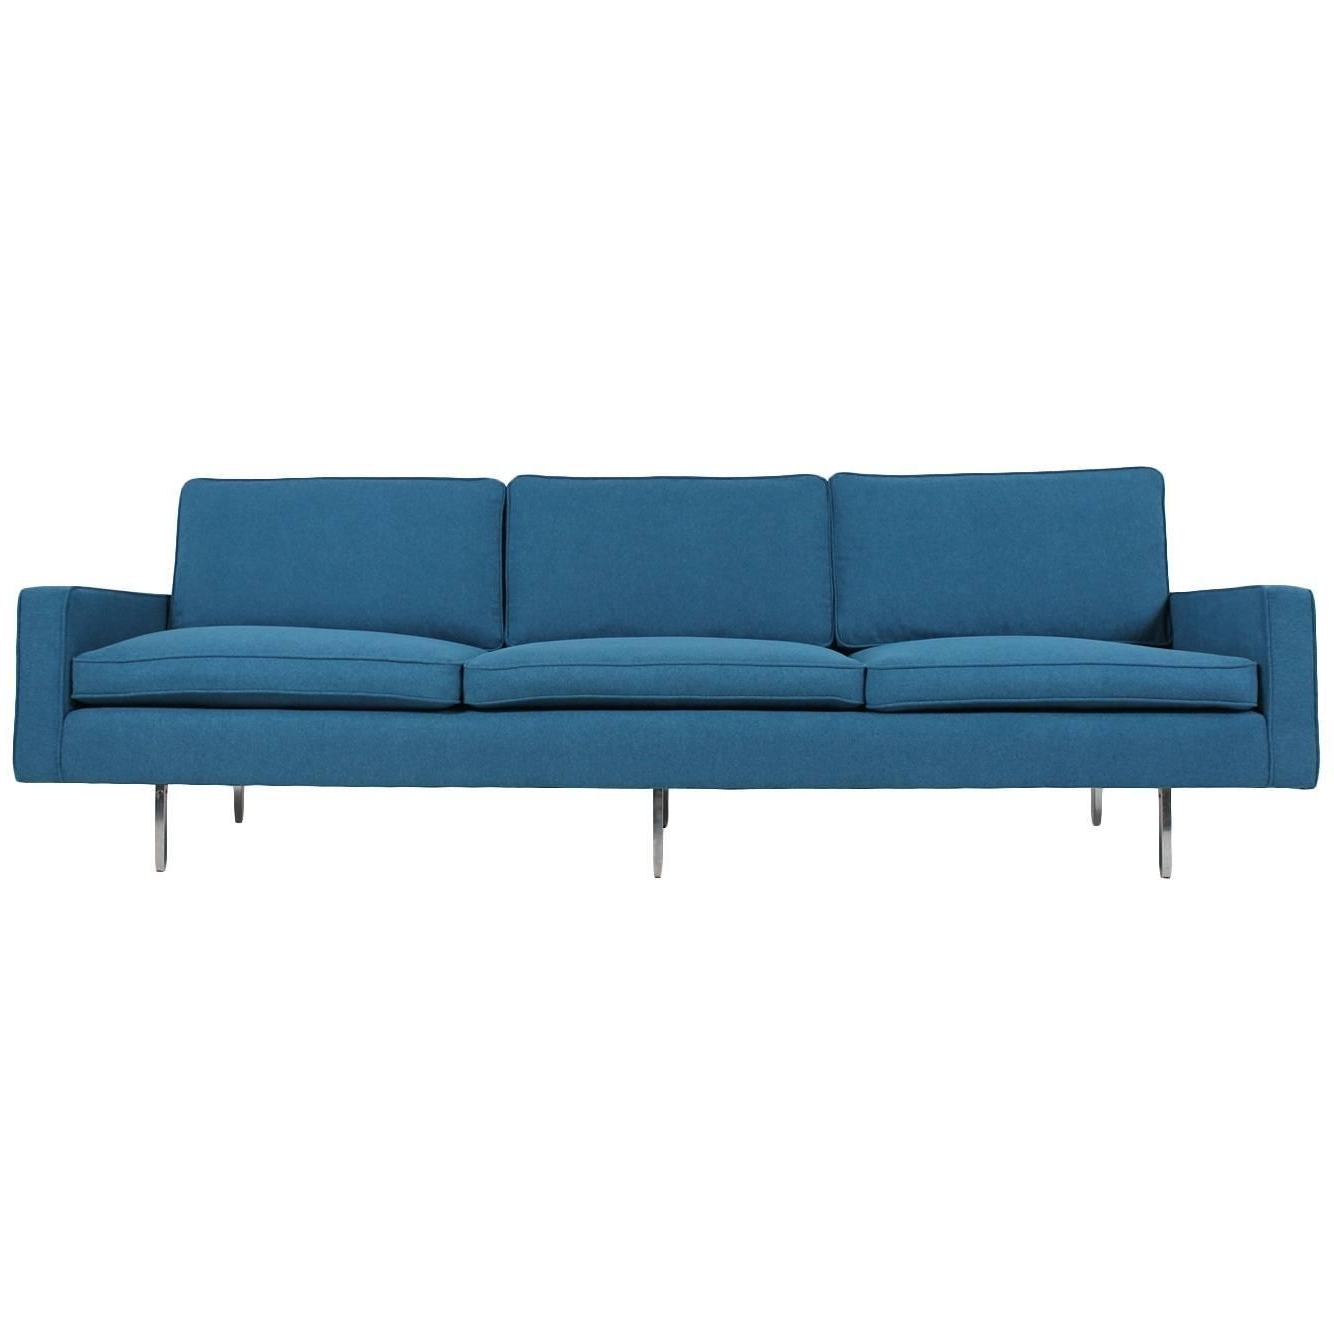 Florence Sofas With Famous Florence Knoll Sofas – 59 For Sale At 1stdibs (View 2 of 20)